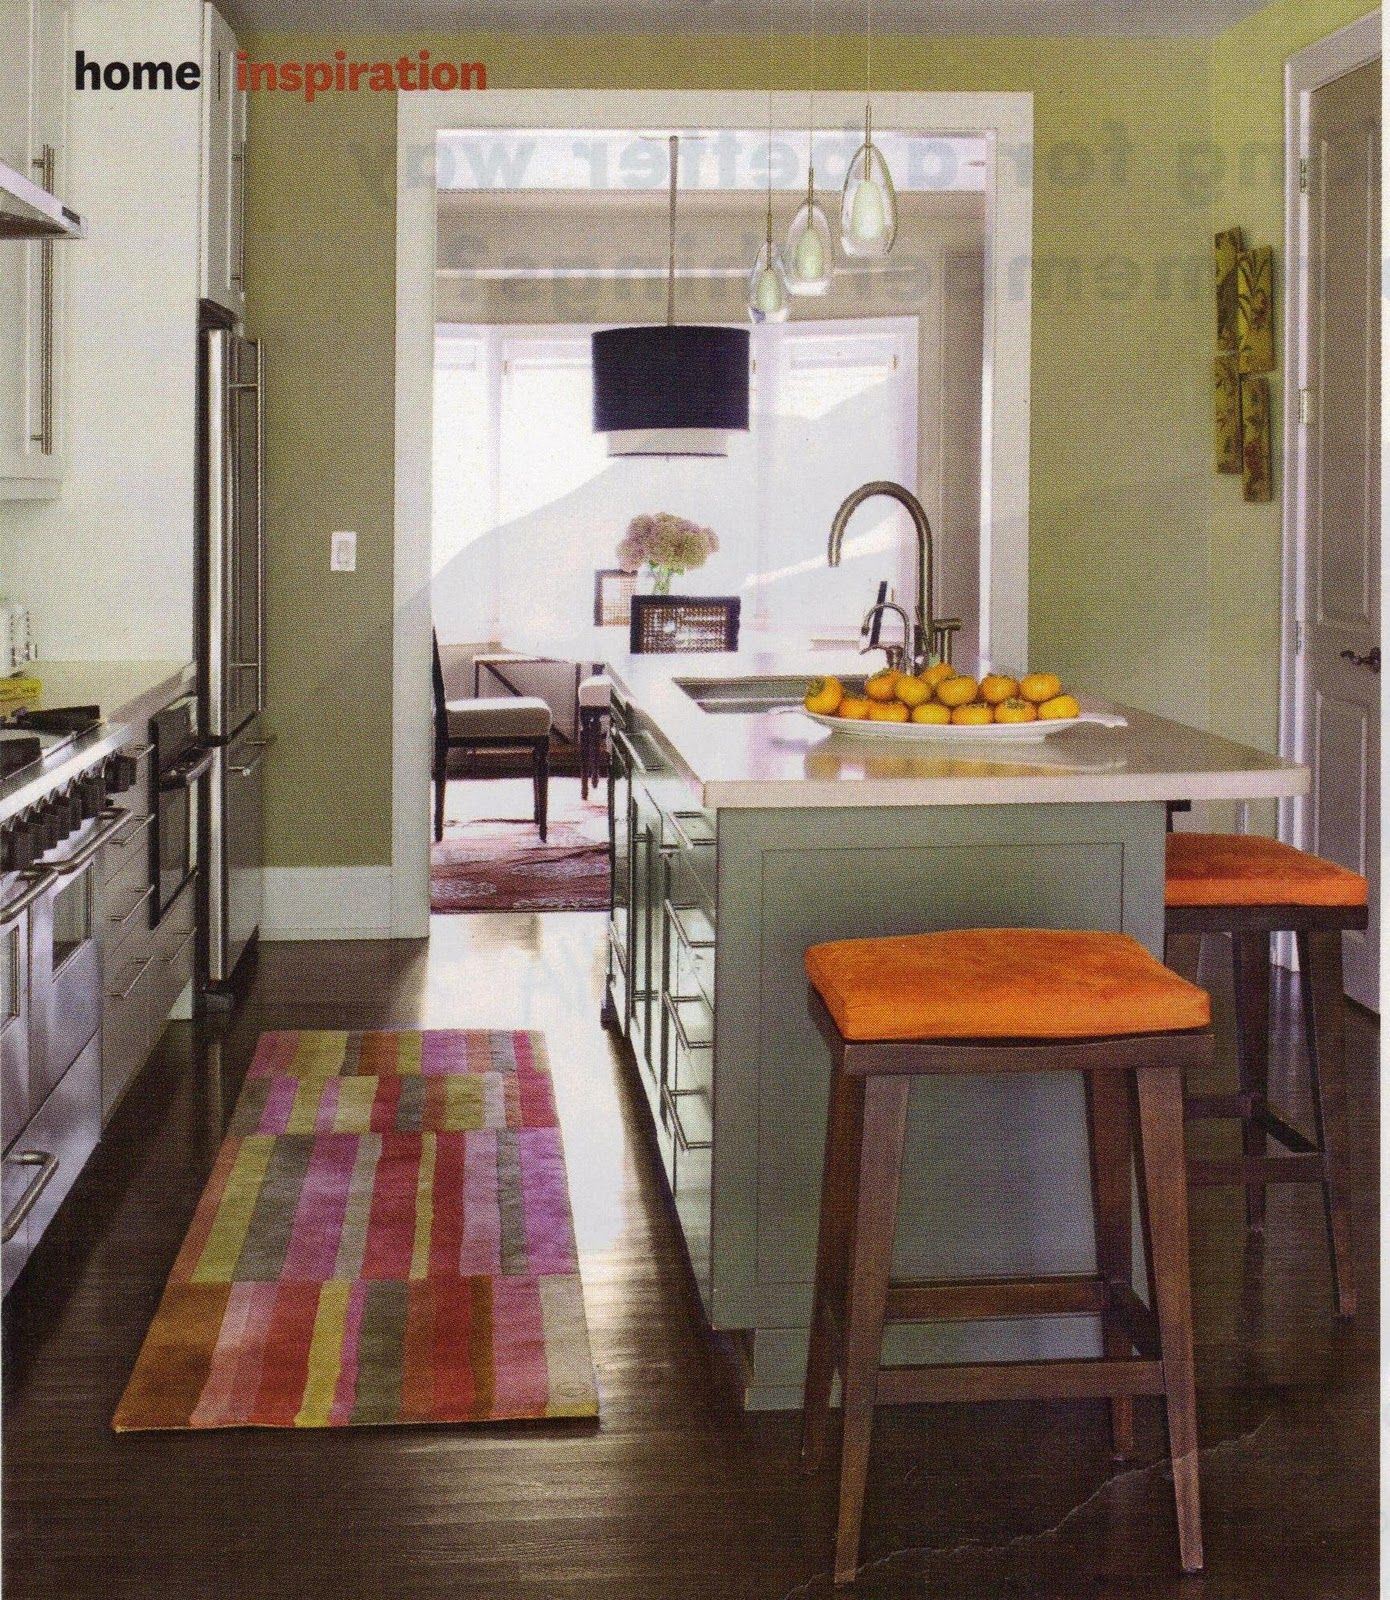 Stylish Kitchen With Rug: Kitchen Area Rug Design Ideas ... Stylish Kitchen  With Rug Kitchen Area Rug Design Ideas .